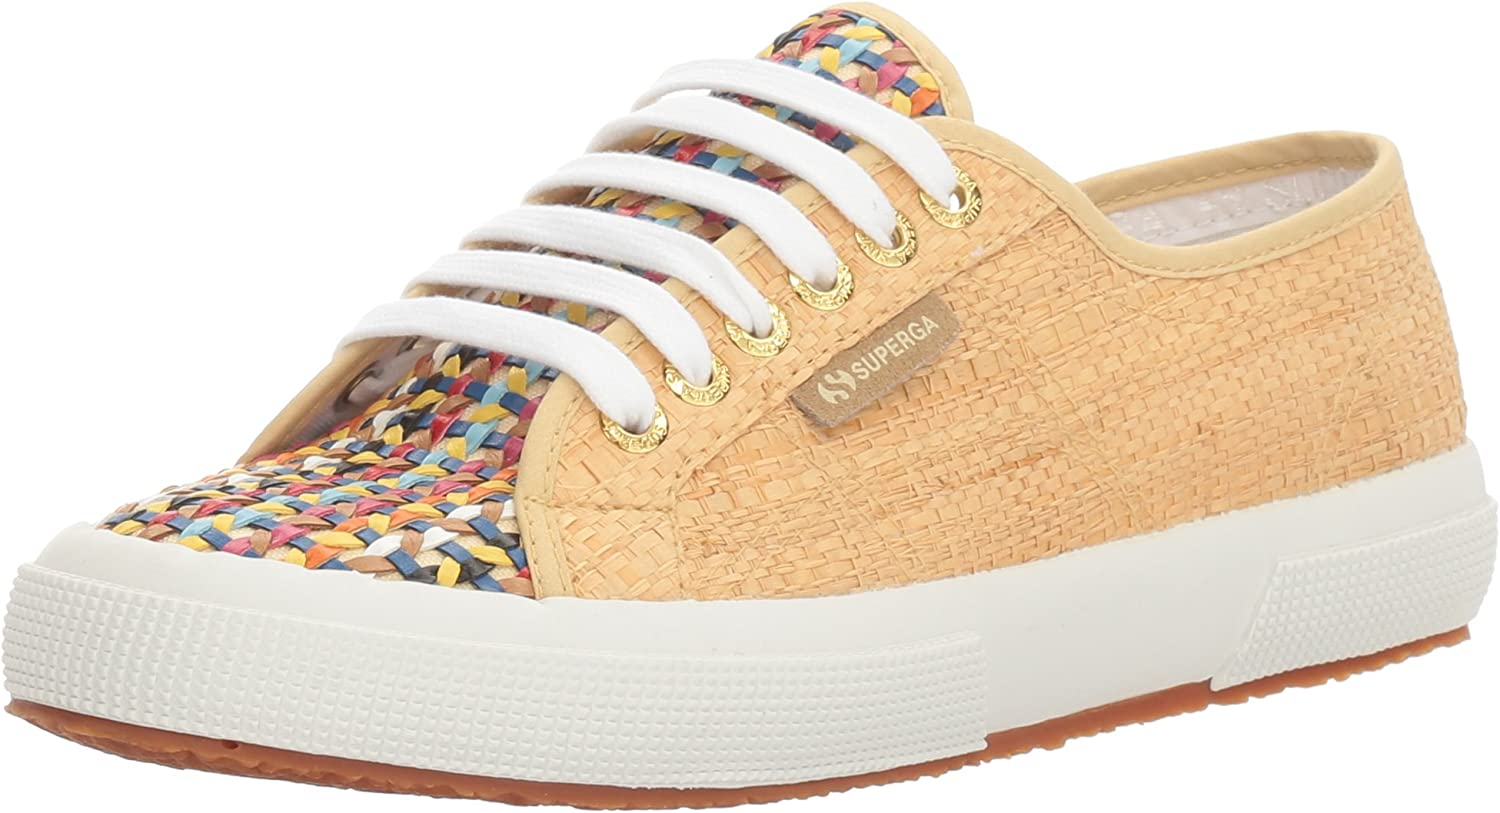 Superga Womens 2750 Raffia Multi Fashion Sneaker